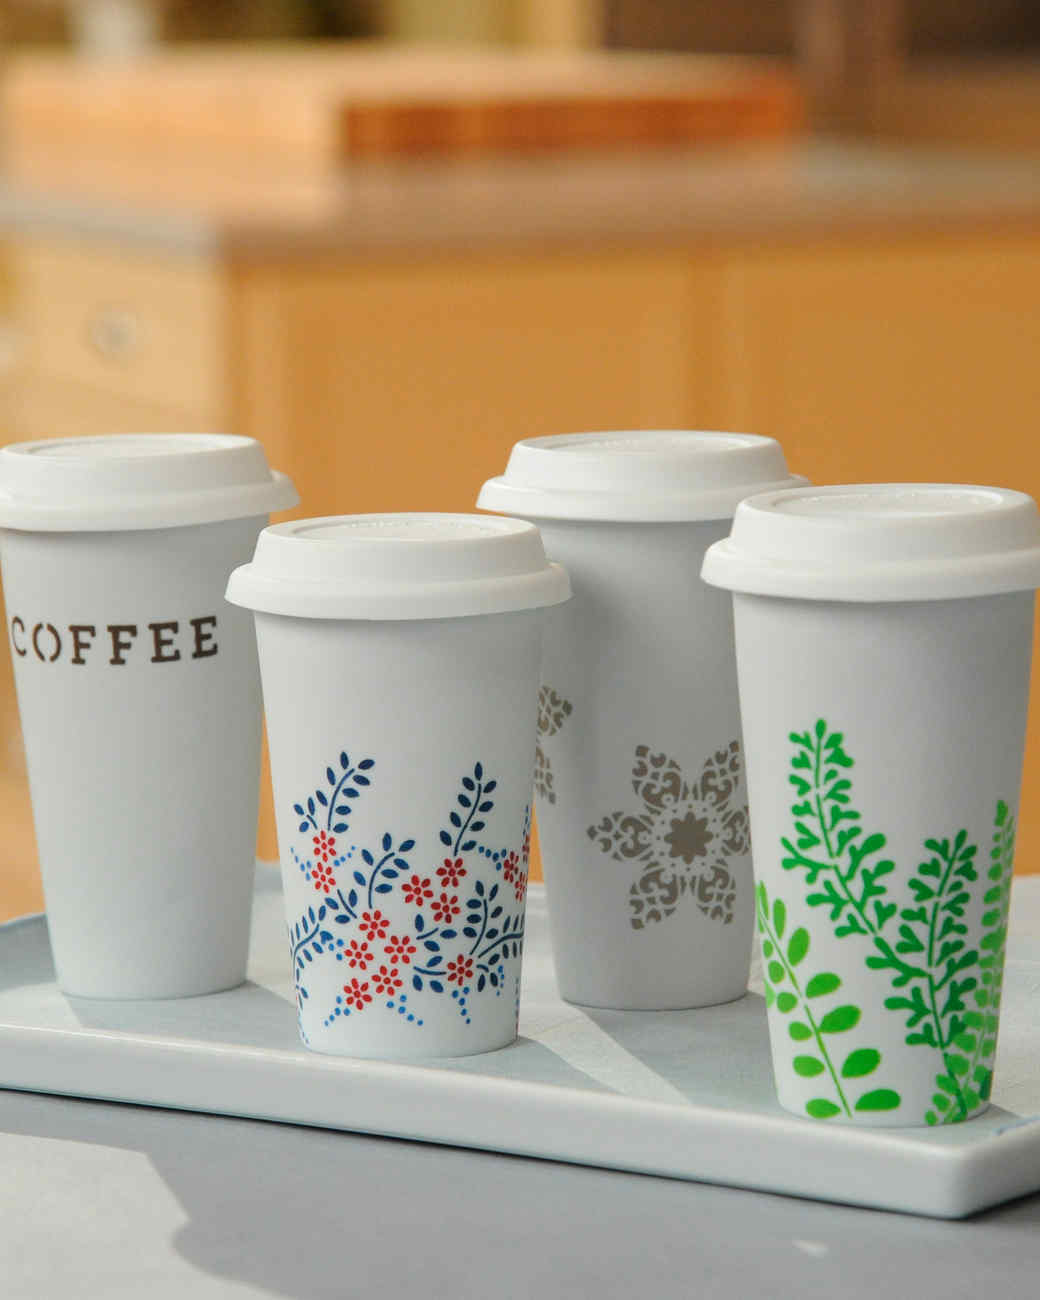 personalized coffee mugs video martha stewart - Coffee Mug Design Ideas